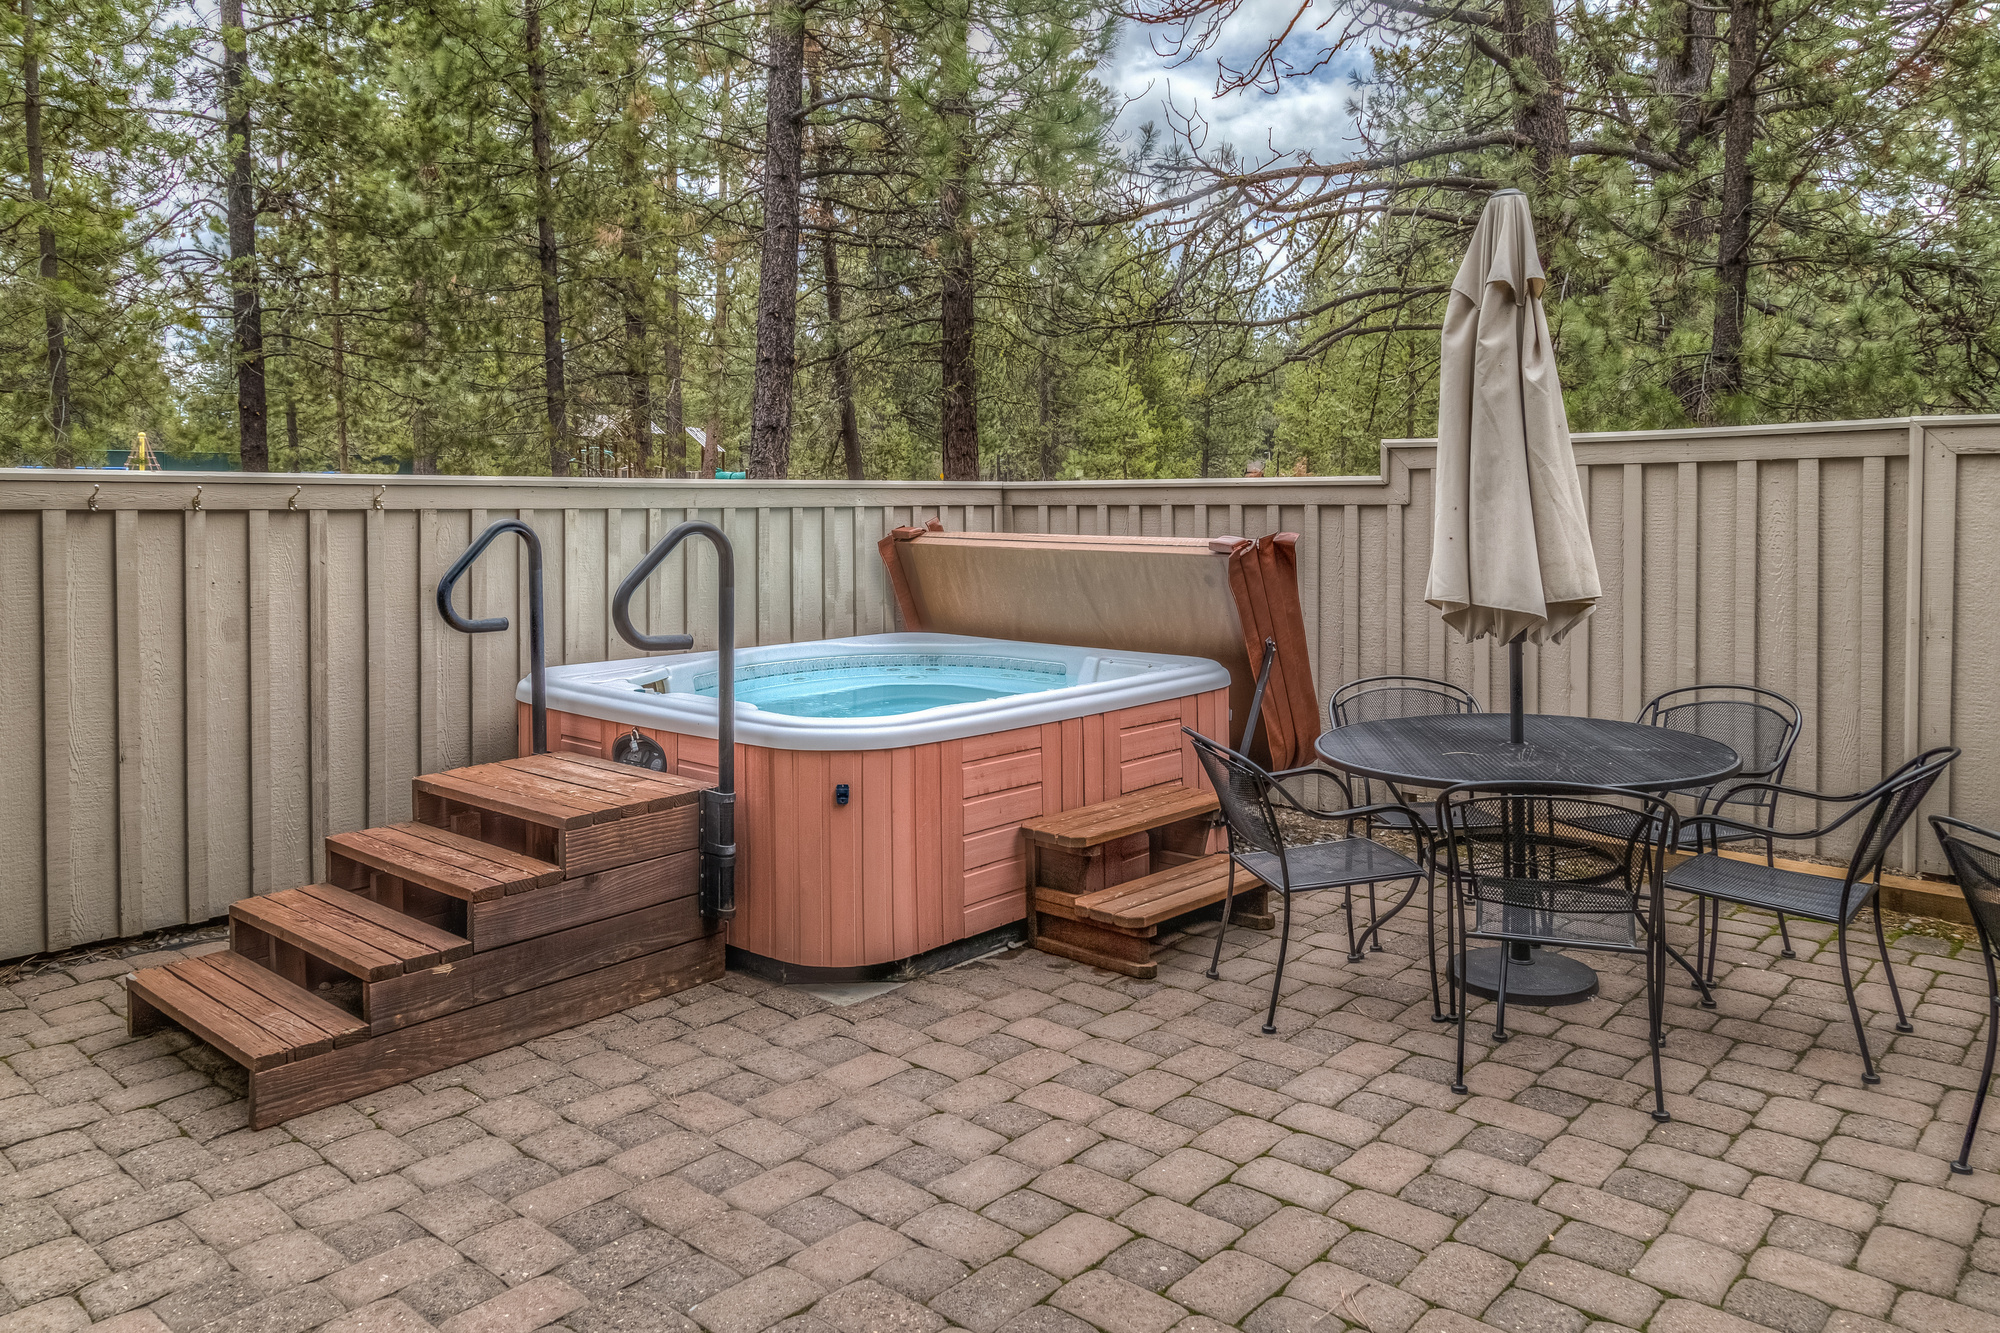 5 Tips For Servicing Your Hot Tub - Hosbeg.com